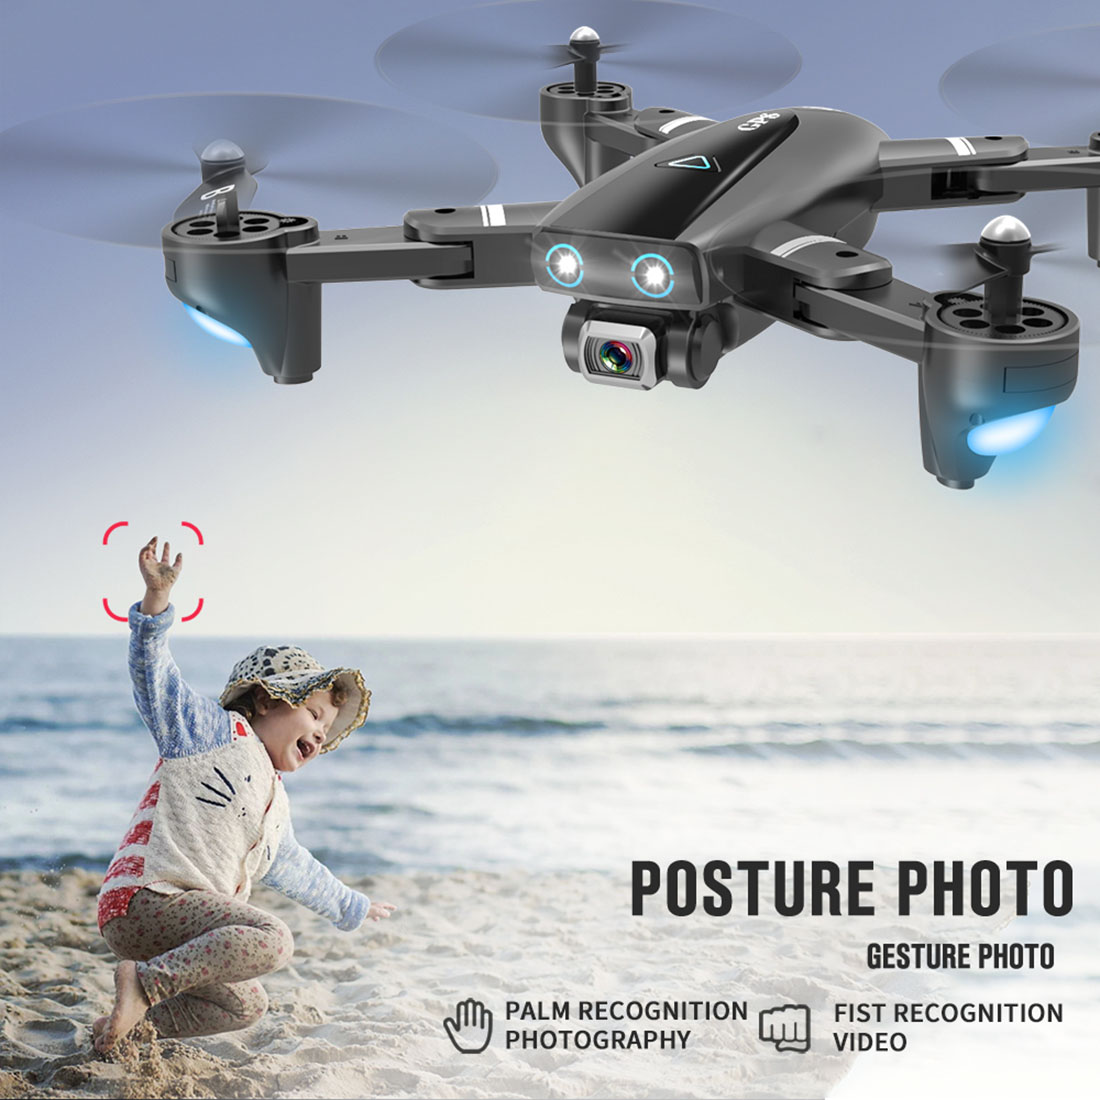 Hot S167 GPS Drone With Camera 5G RC Quadcopter Drone 4K WIFI FPV Foldable Off-Point Flying Gesture Photos Video Helicopter Toy